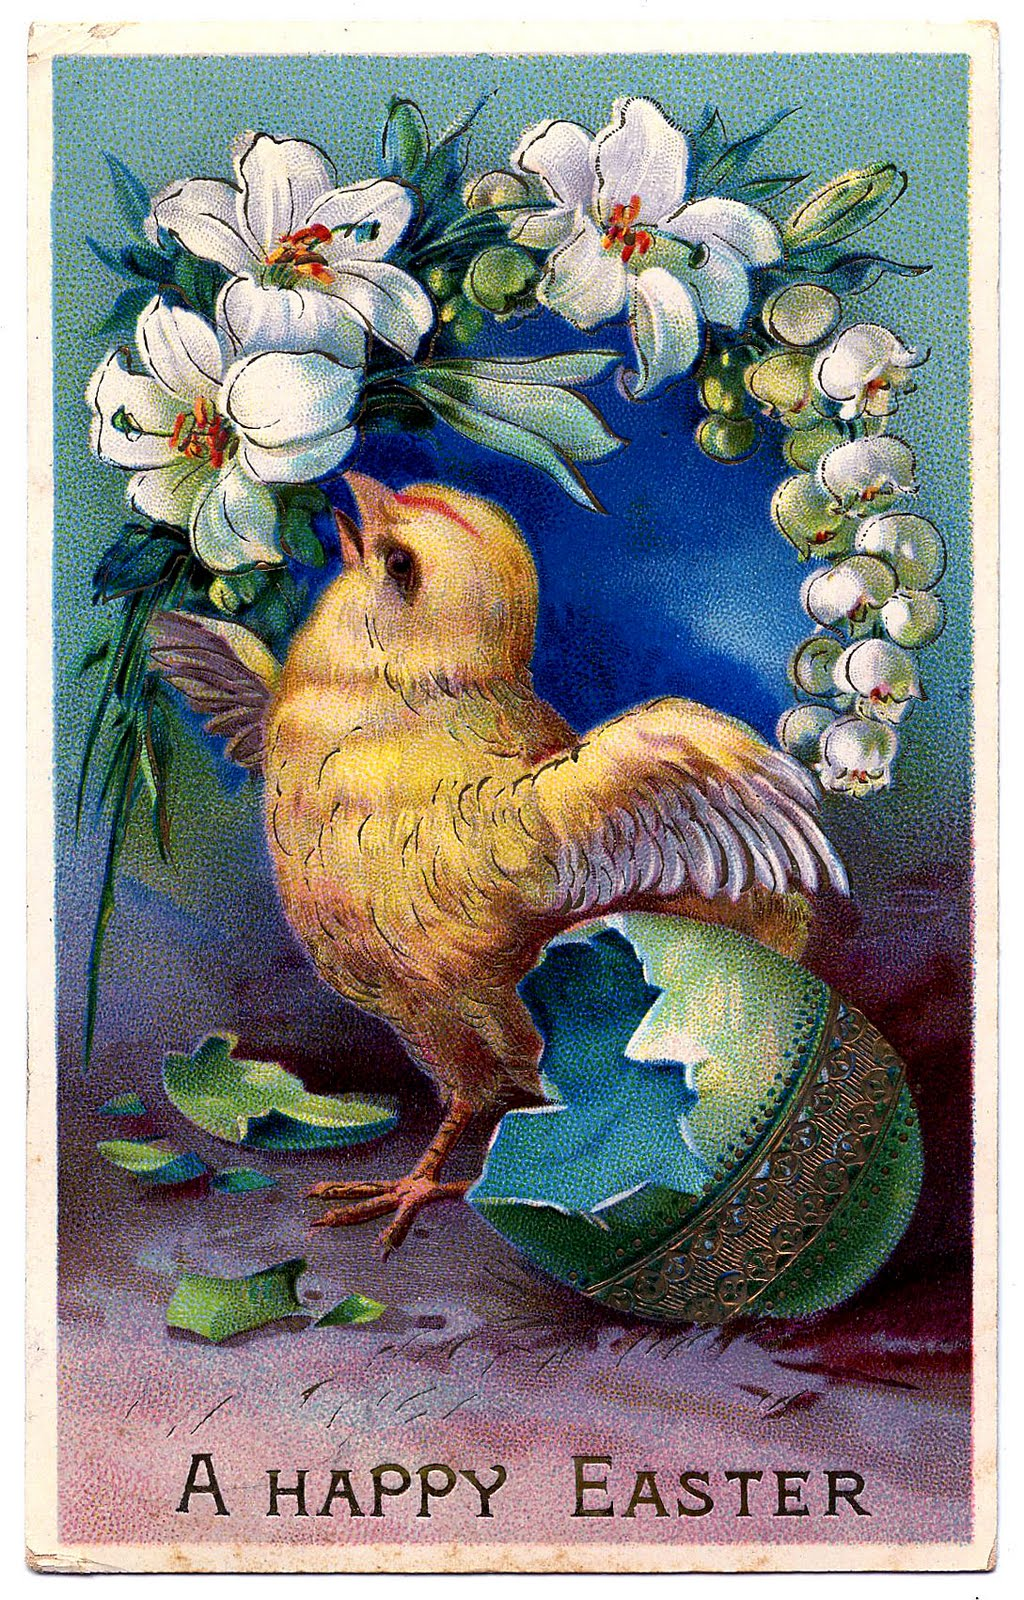 Free vintage easter egg clipart graphic freeuse stock Vintage Easter Clip Art - Sweet Baby Chick with Egg - The Graphics ... graphic freeuse stock